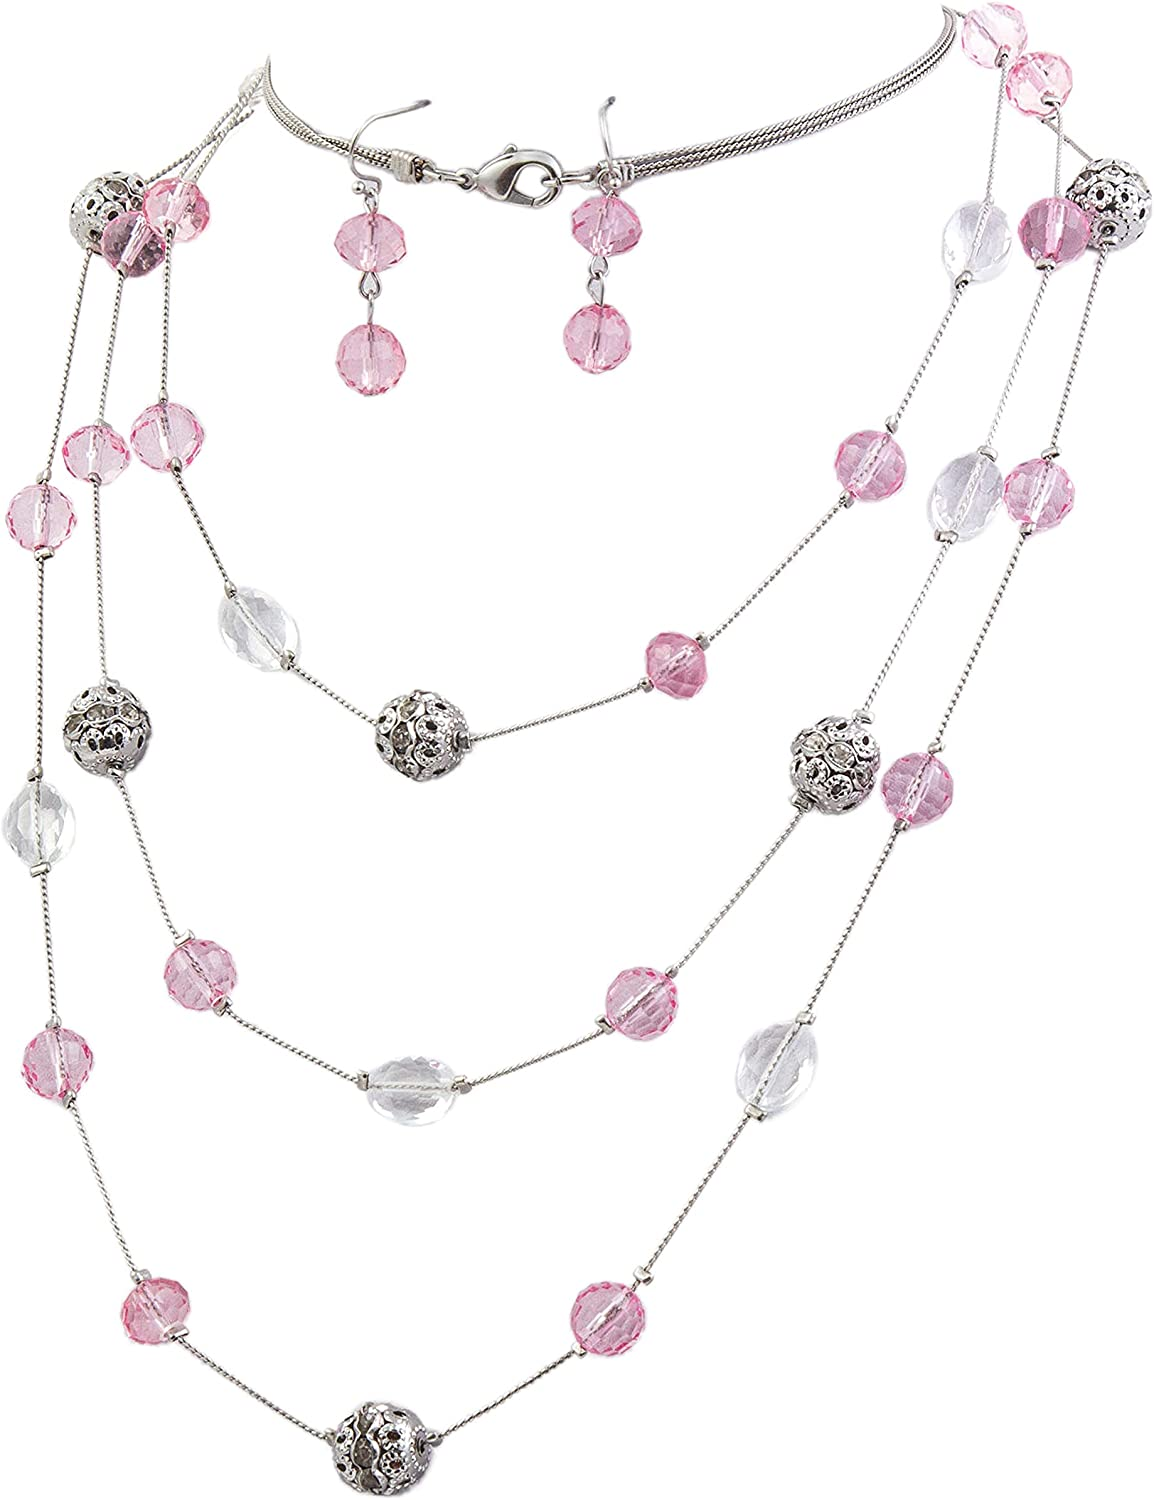 Bocar Fashion 3 Layer Handmade Beads Necklace Earring Set Long Illusion Necklace for Women